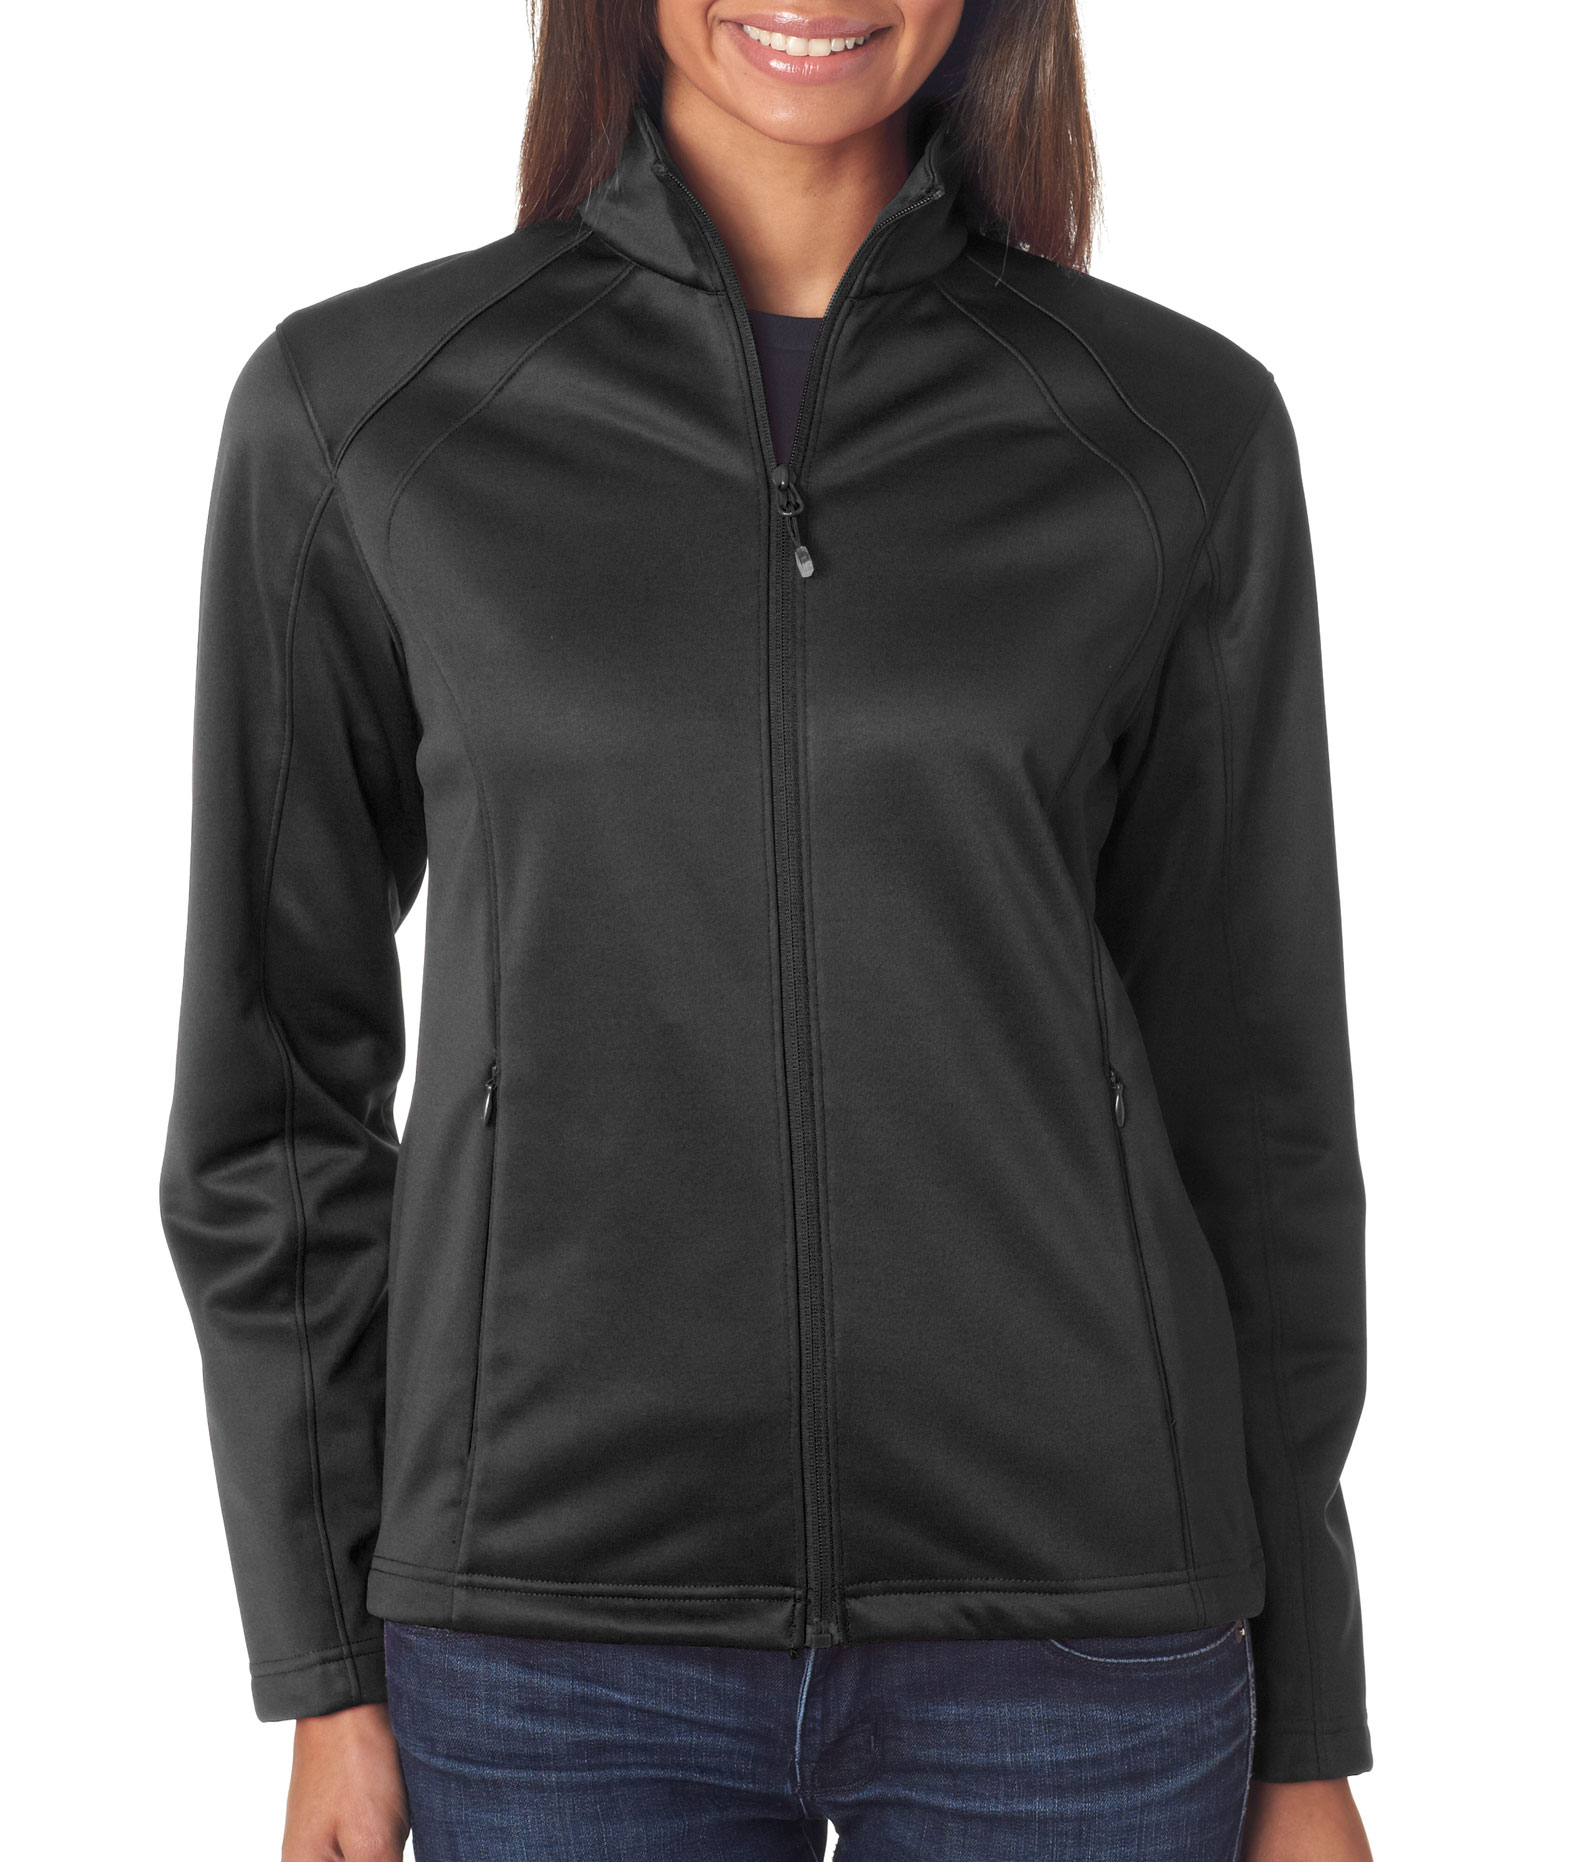 UltraClub Ladies Soft Shell Jacket